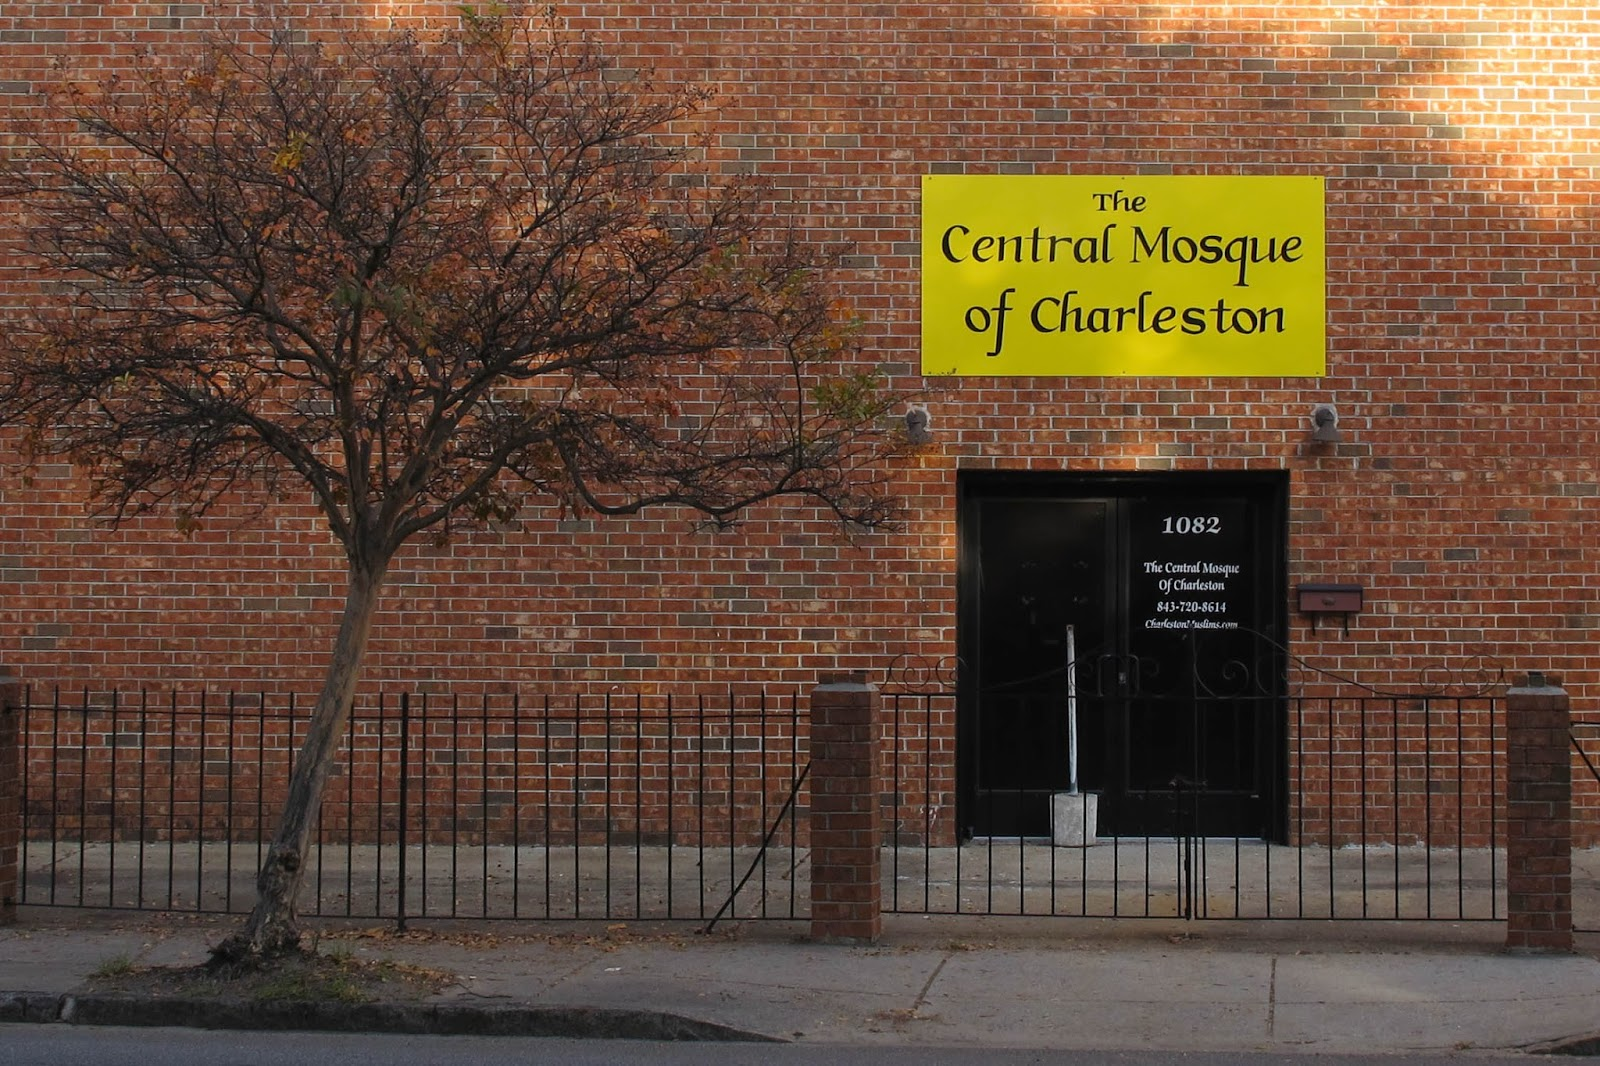 charleston muslim Get prayer times in charleston (sc) calculate islamic namaz timing in charleston (sc), united states for fajr, dhuhr, asr, maghrib and isha - north america (isna.